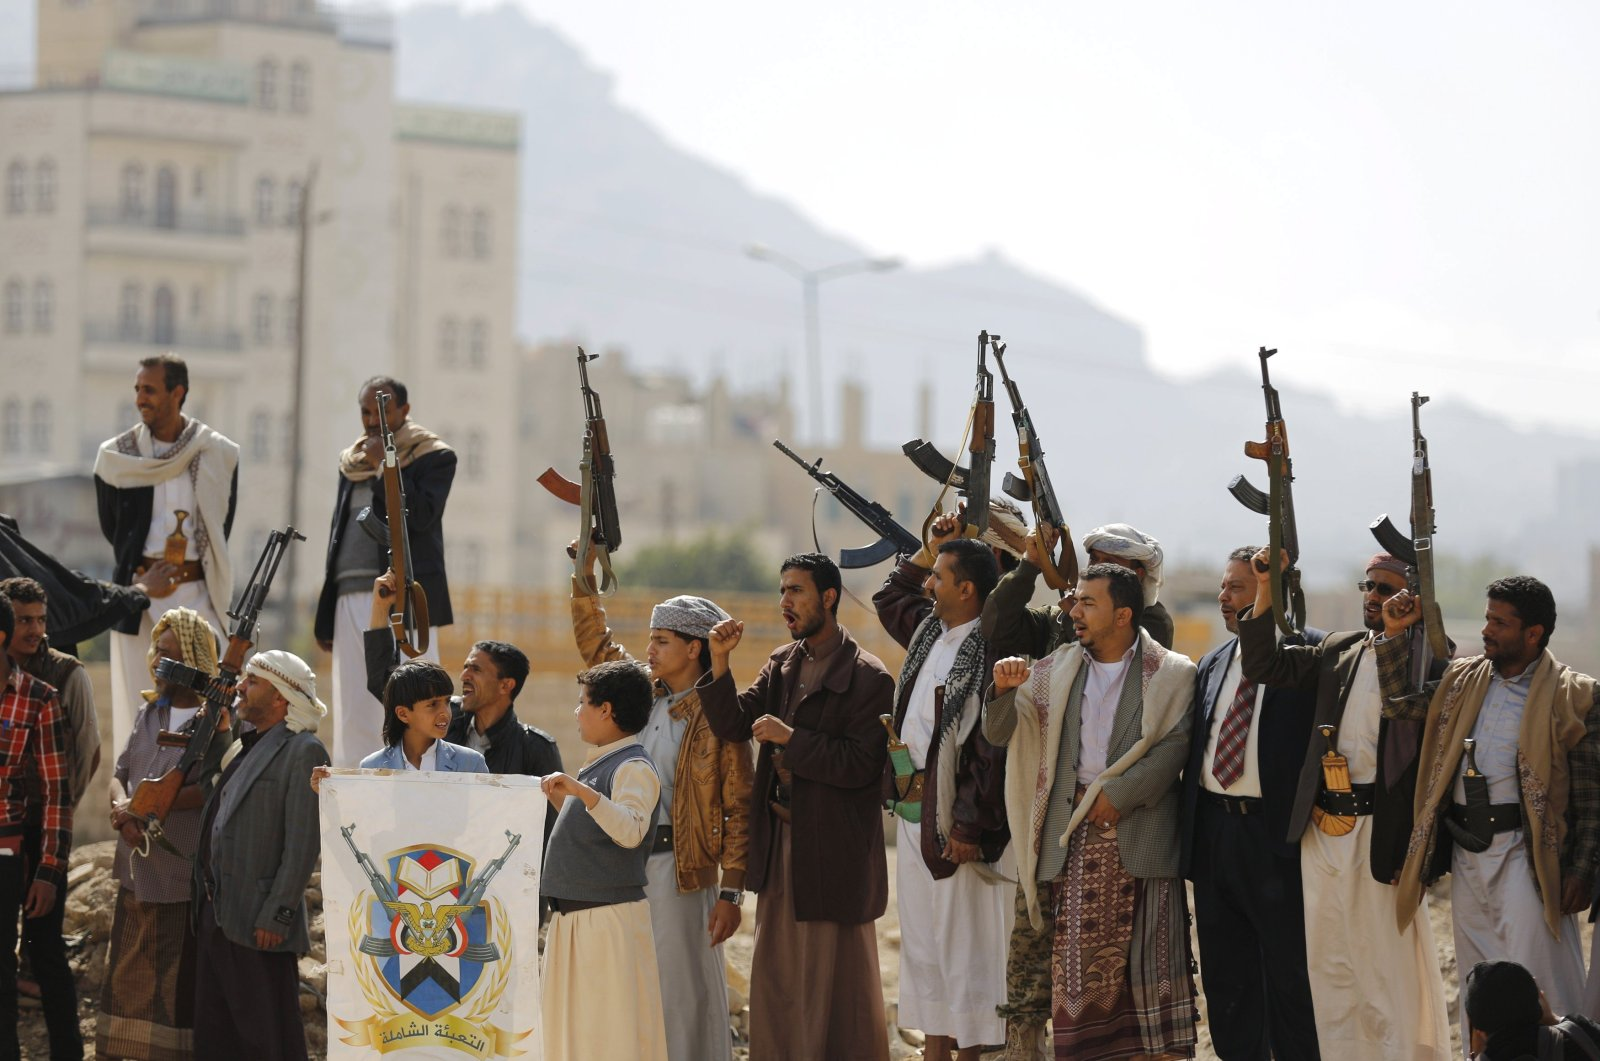 Tribesmen loyal to the Houthi movement shout slogans and raise their weapons during a gathering to show their support for the group, in Sanaa, Yemen, Dec. 15, 2015. (Reuters)